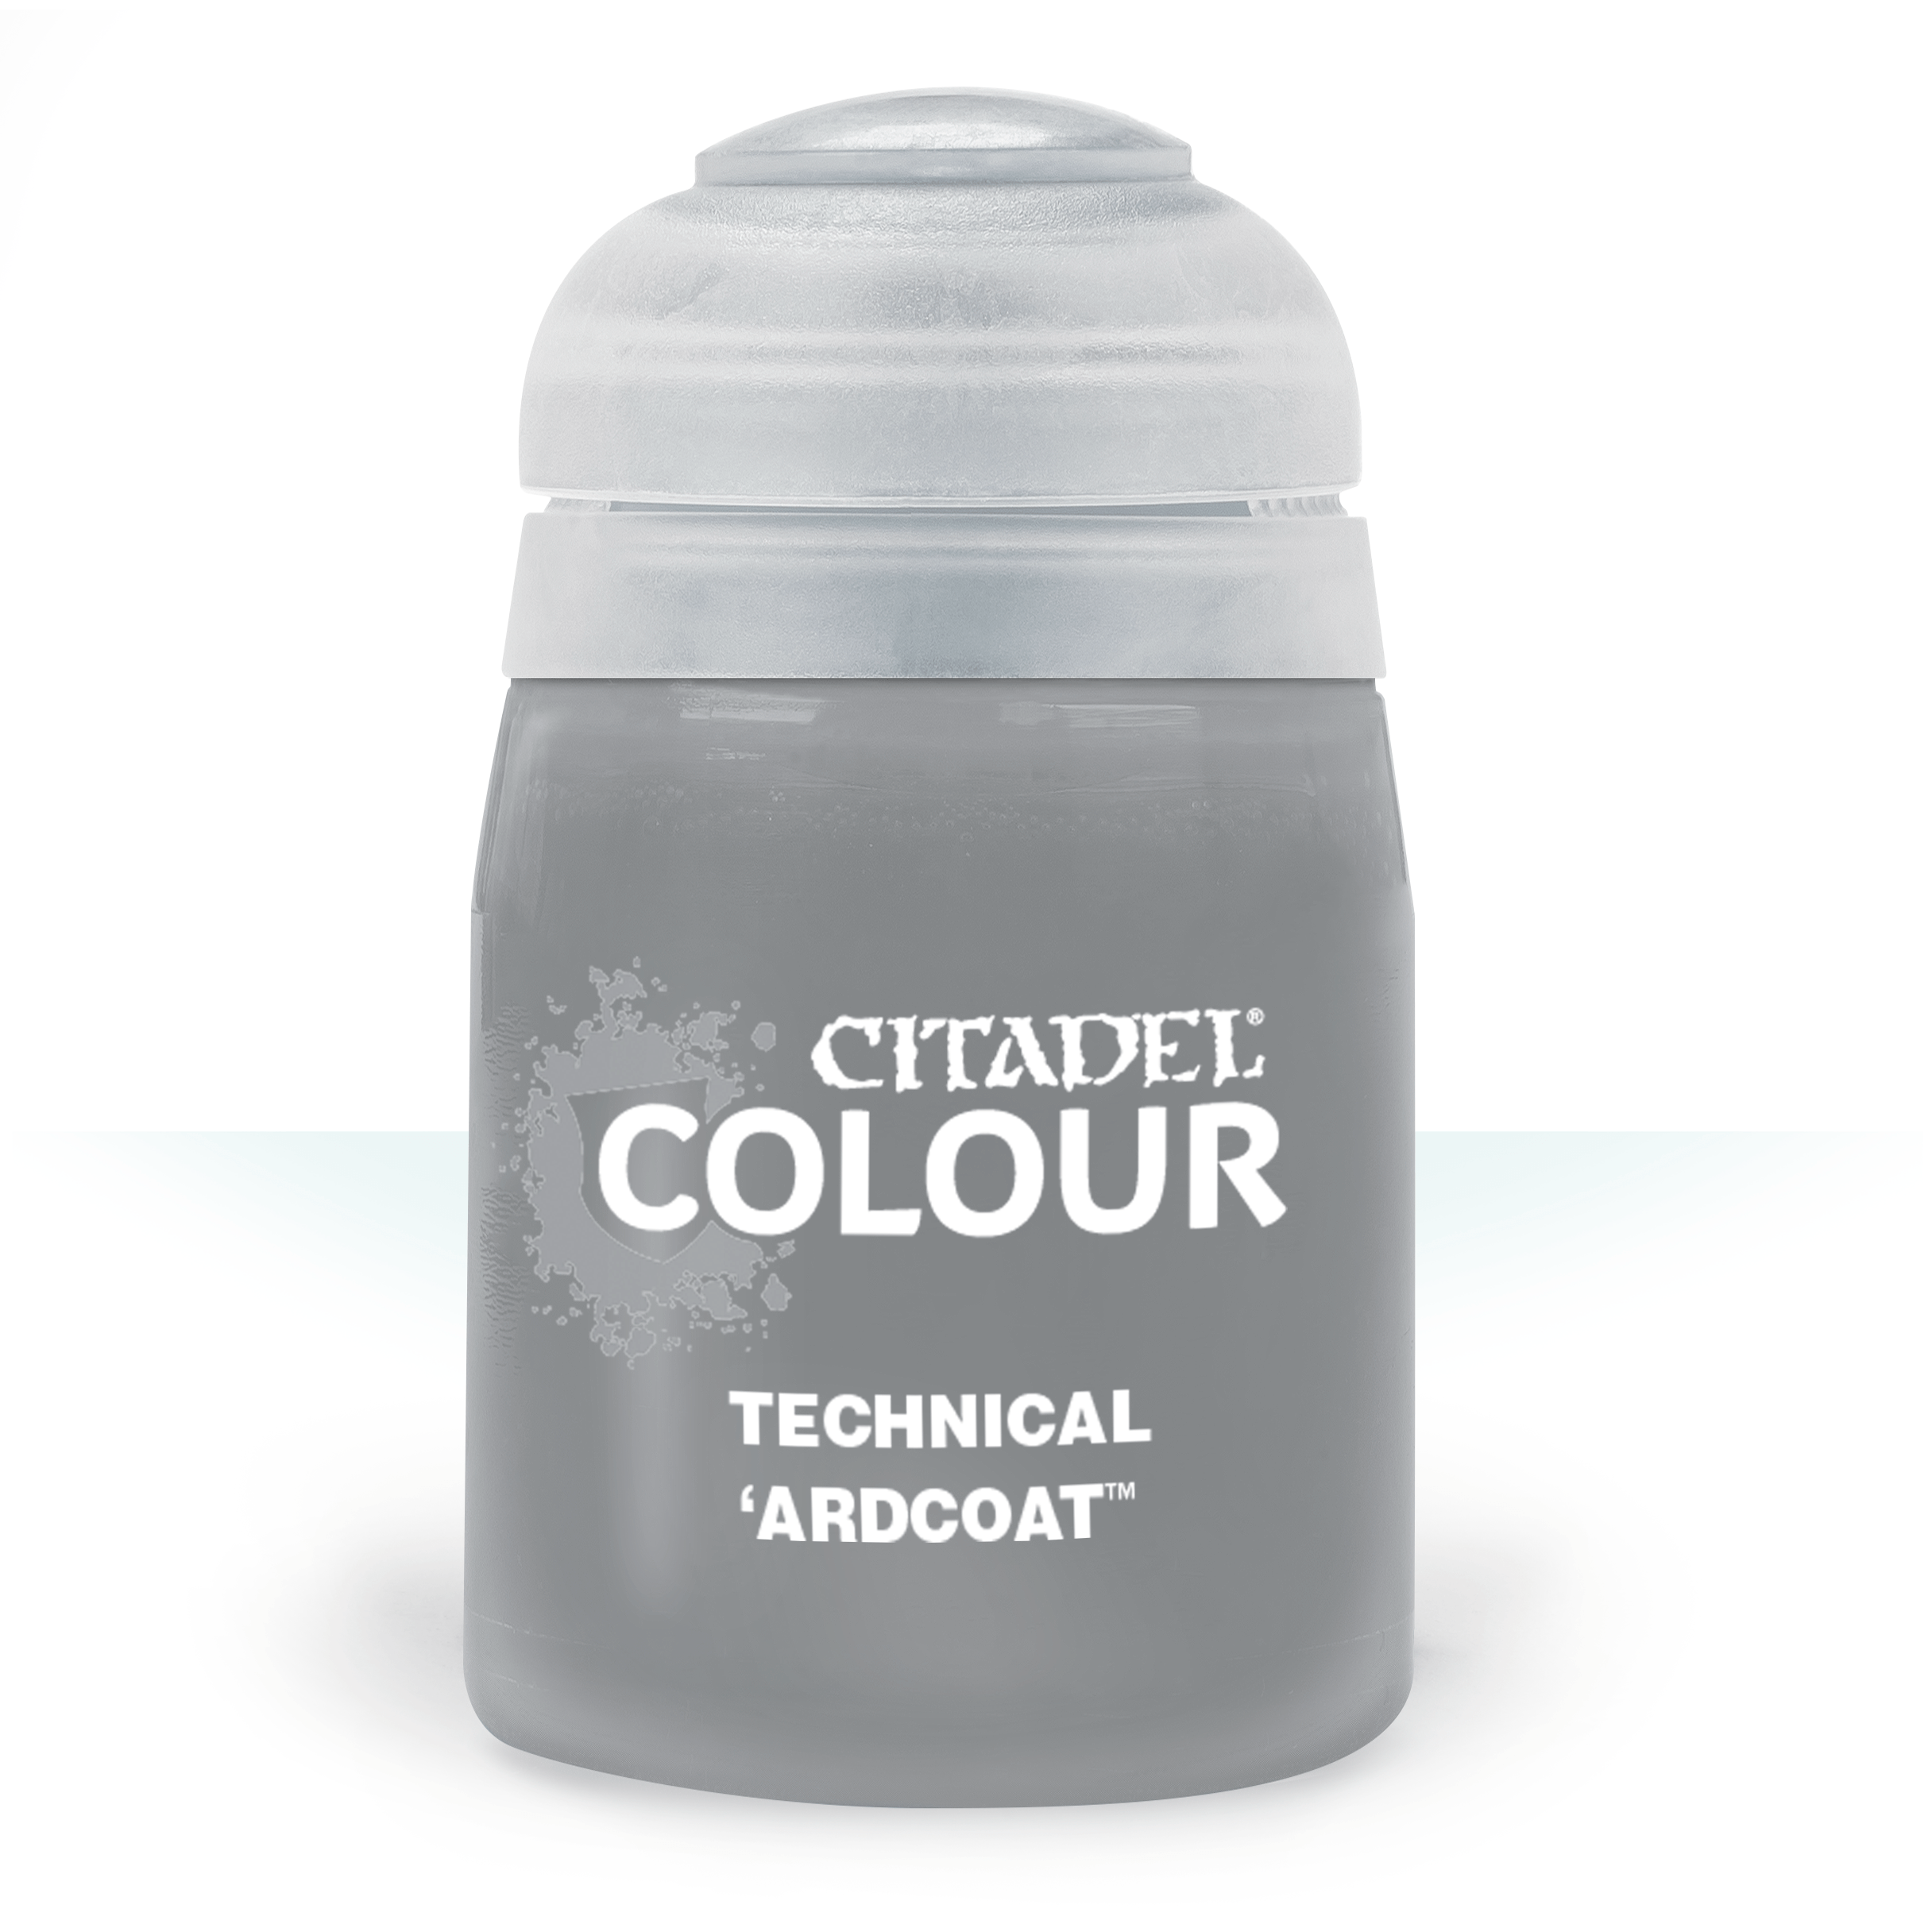 'Ardcoat, Citadel Technical 24ml